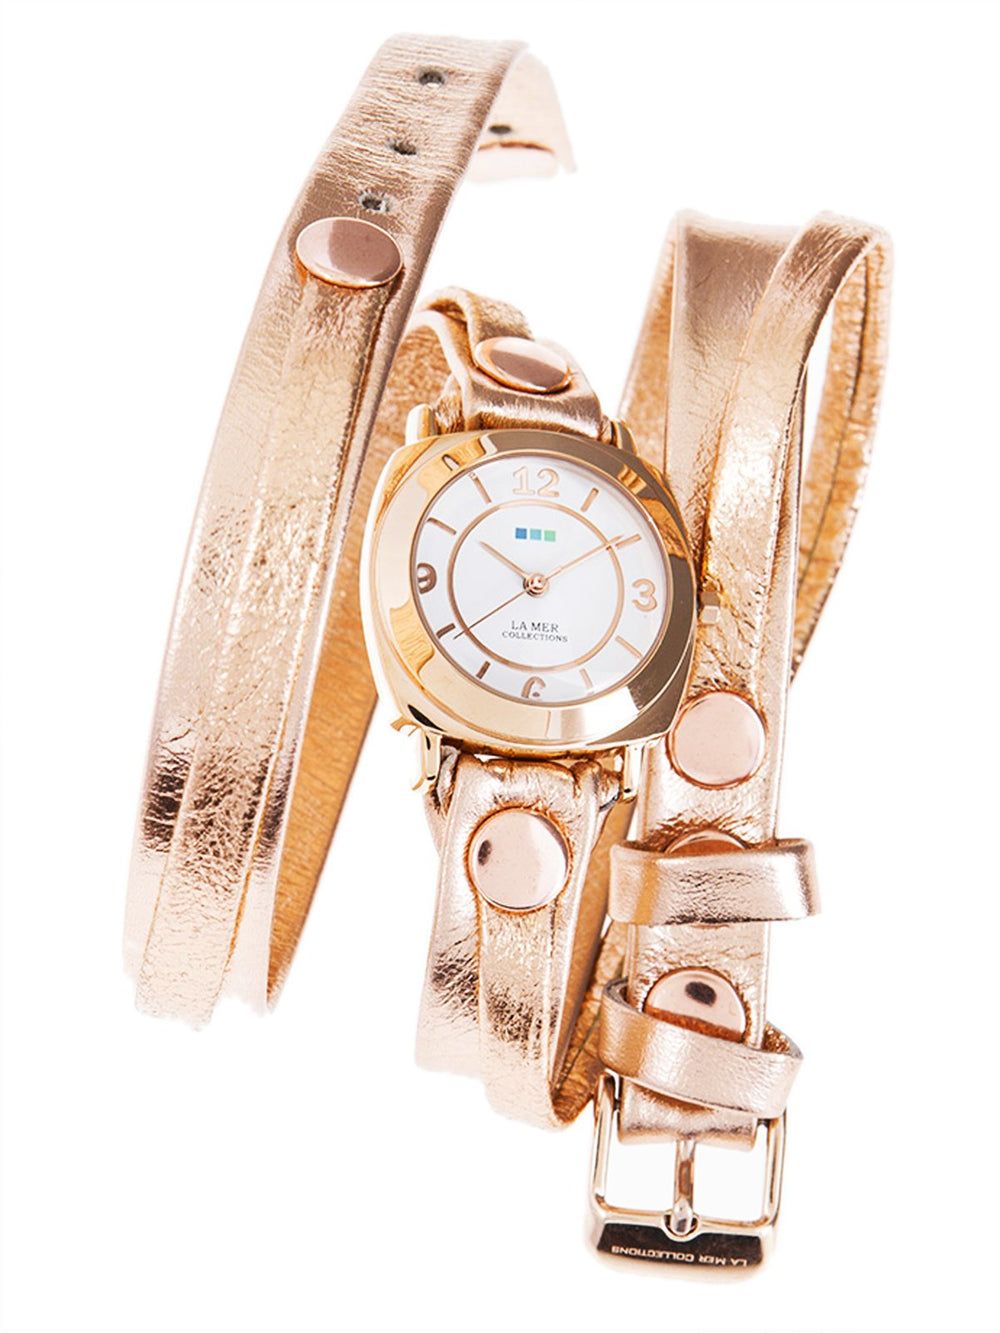 Classic Layer Wraps Watch, LA MER COLLECTIONS - elilhaam.com